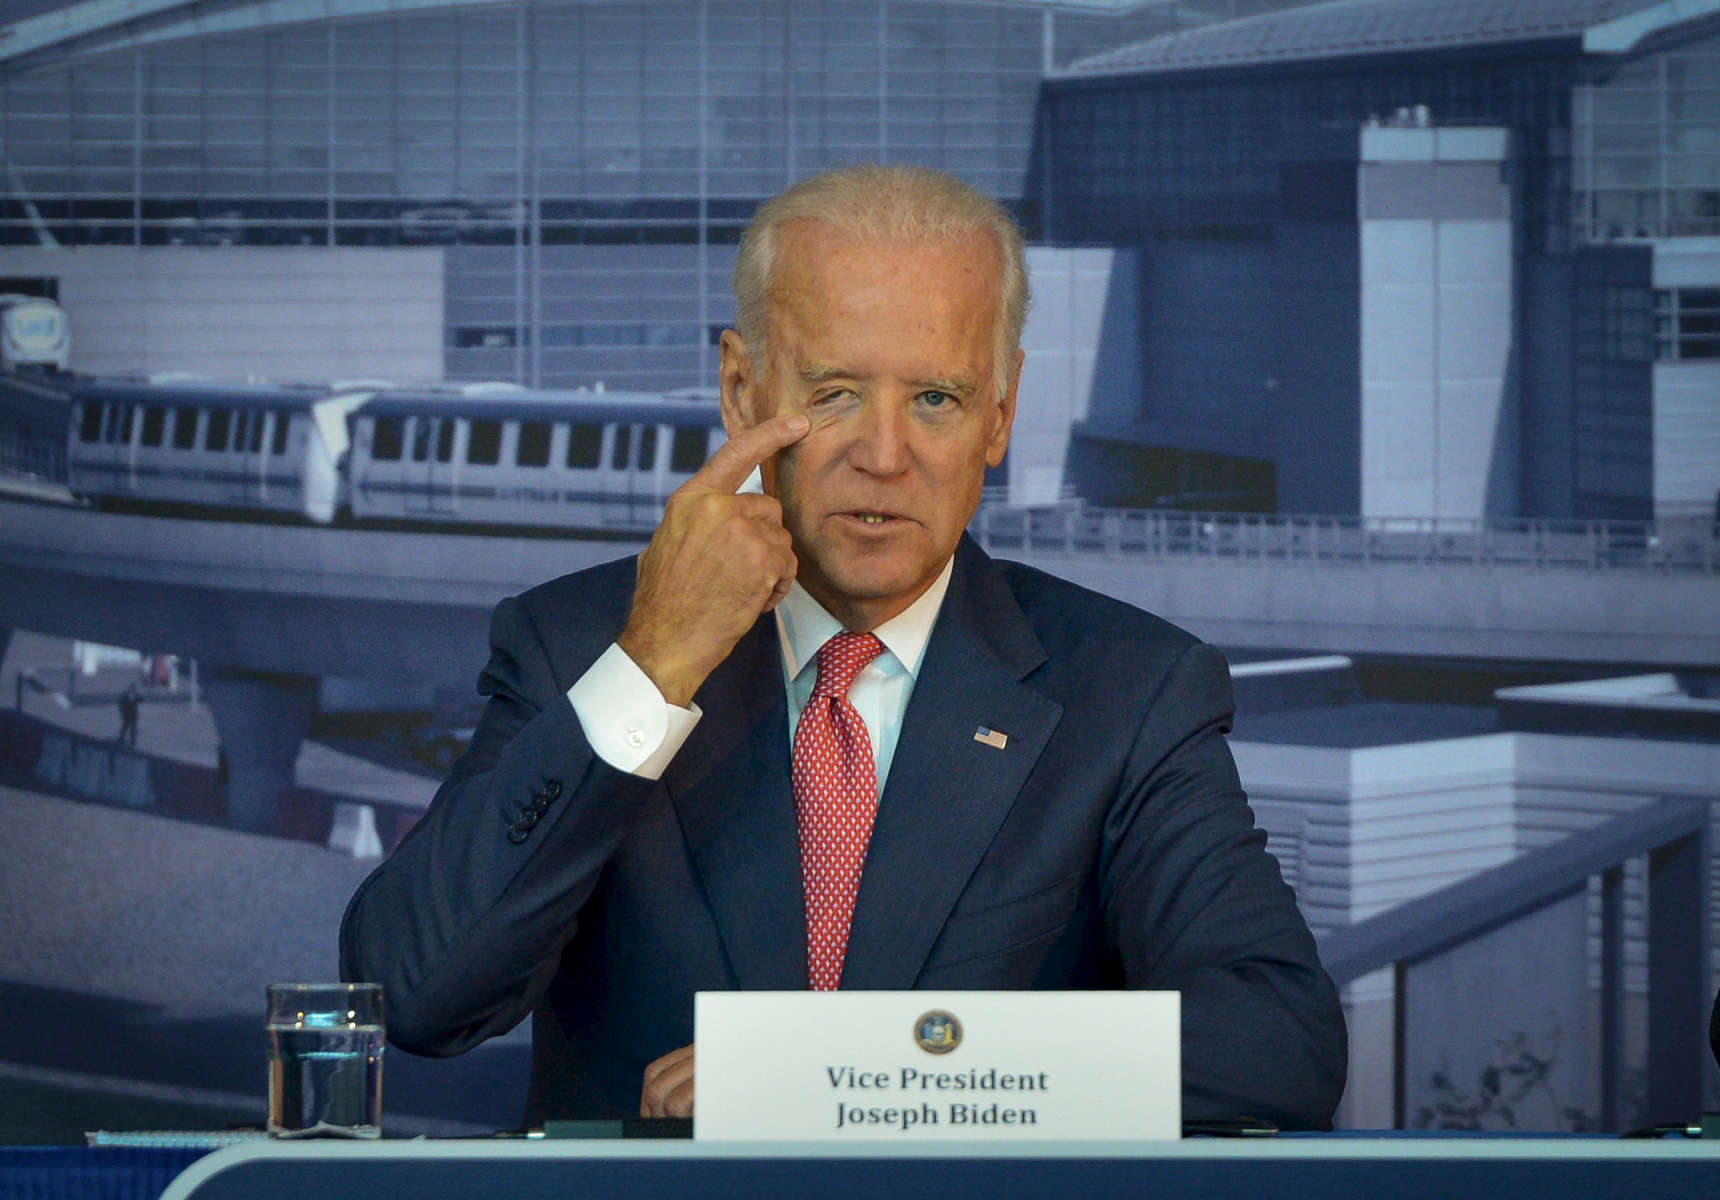 Vice President Joe Biden speaks at the New York State Governor Andrew Cuomo sponsored conference {quote}Modernize Our Airports: Gateways to New York{quote}  concerning infrastructure and modernization at Vaughn College of Aeronautics and Technology in Queens on Monday, October 20, 2014.